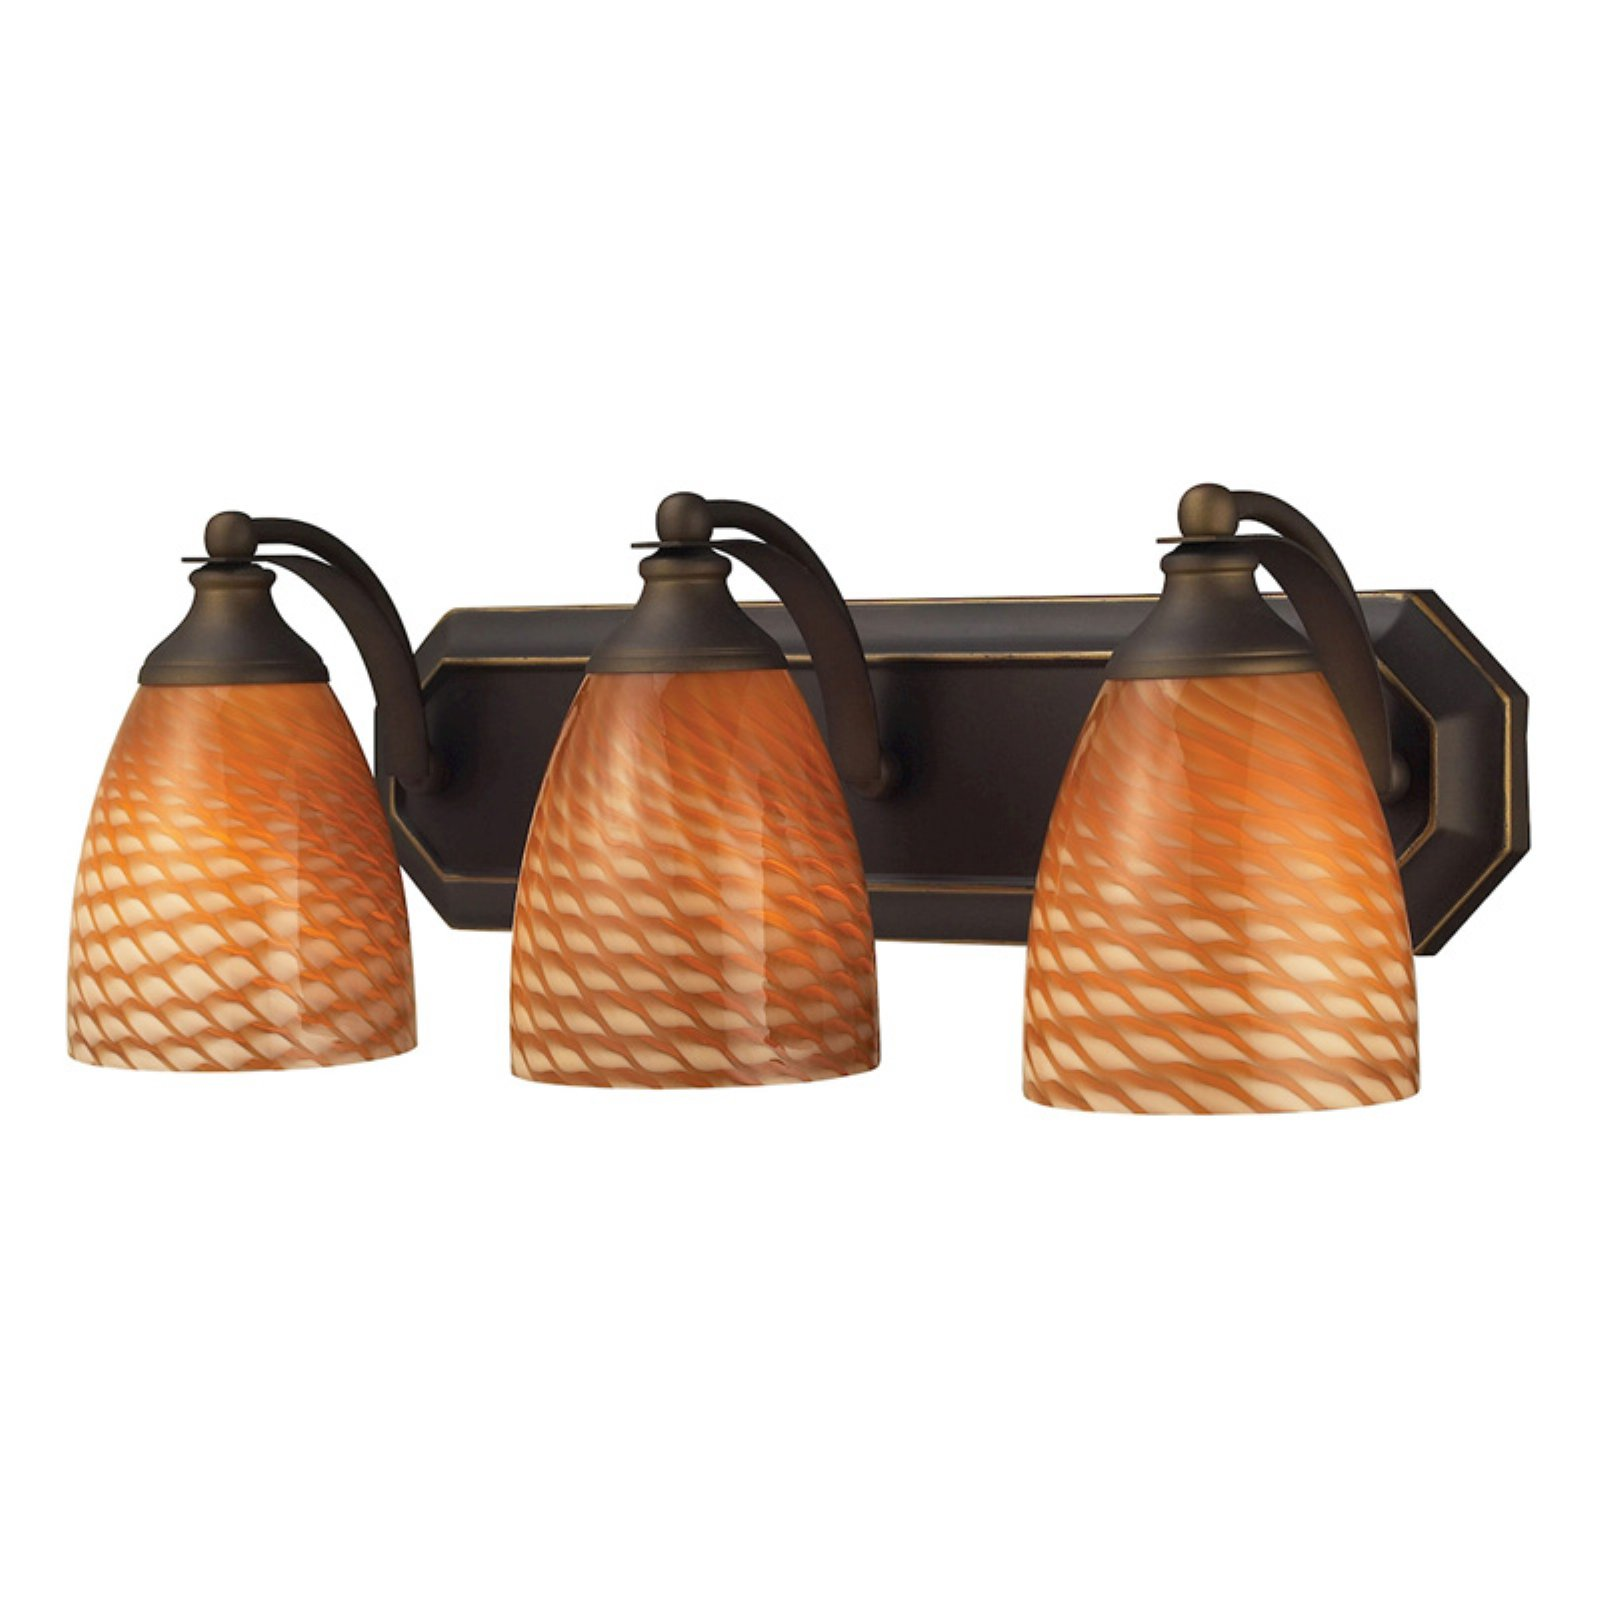 Elk Lighting Bath and Spa 570-3 Bathroom Vanity Light with Cocoa Shades